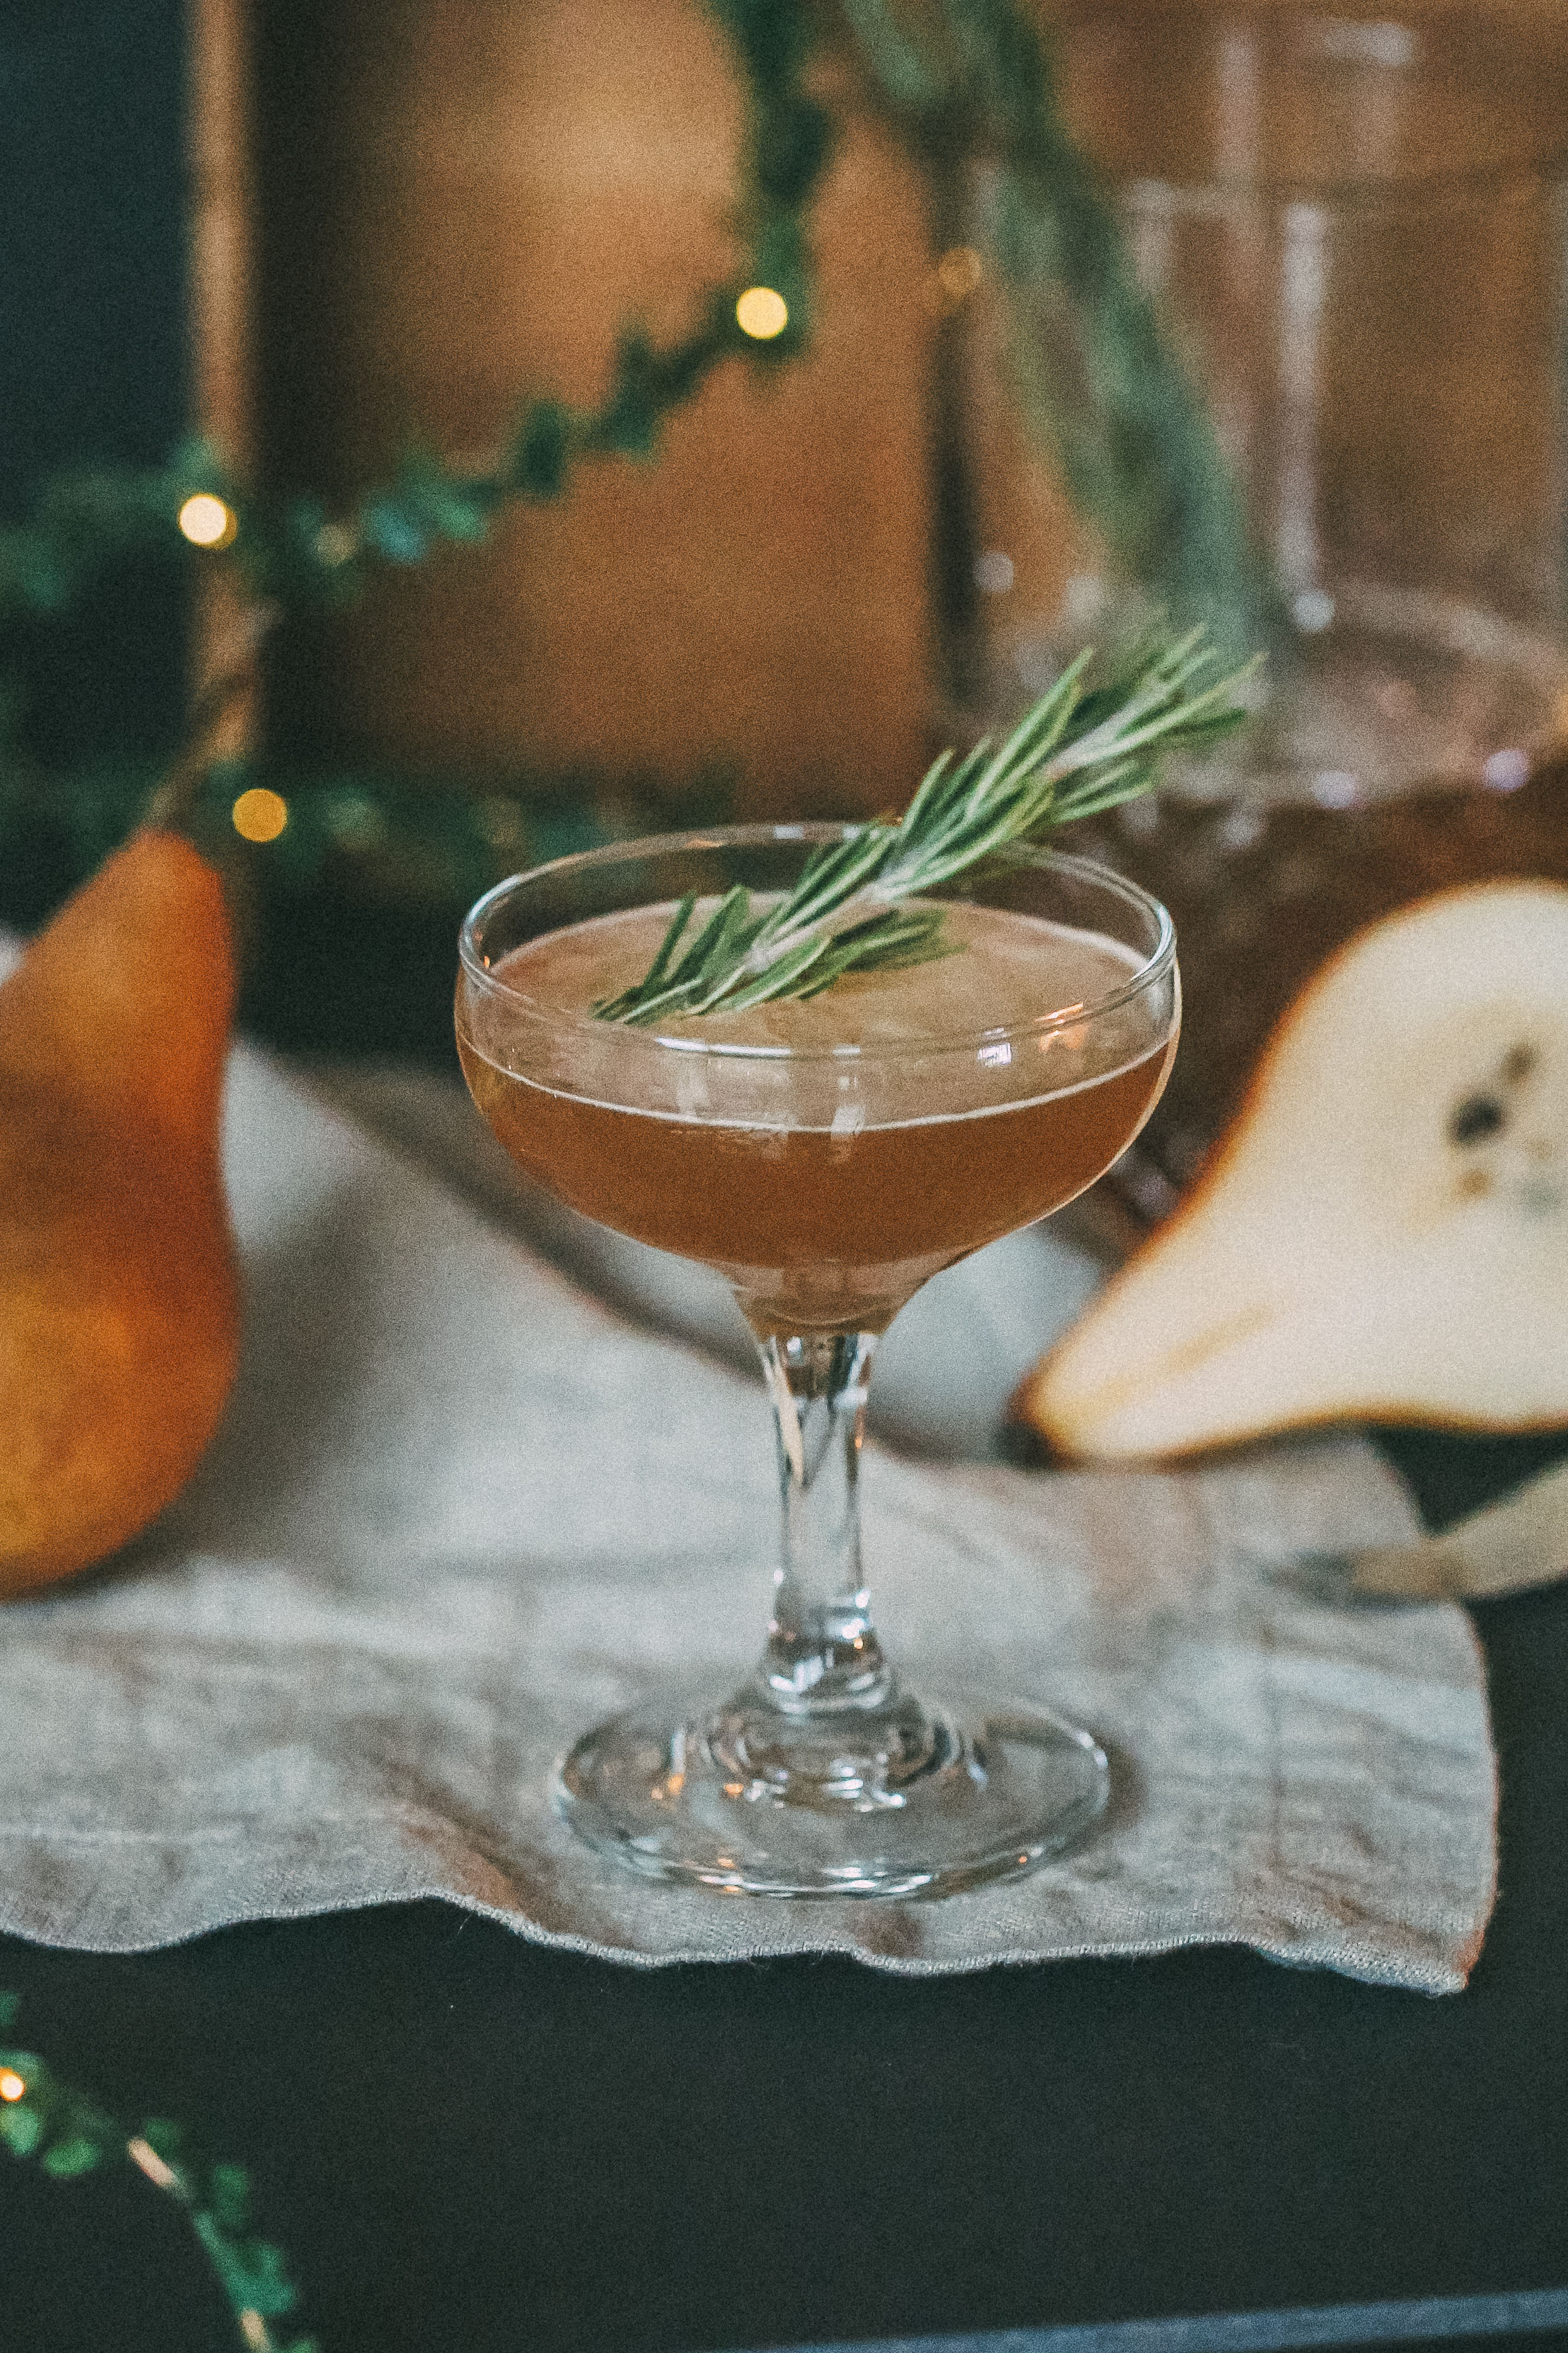 THE PEAR TREE - WHISKEY COCKTAIL